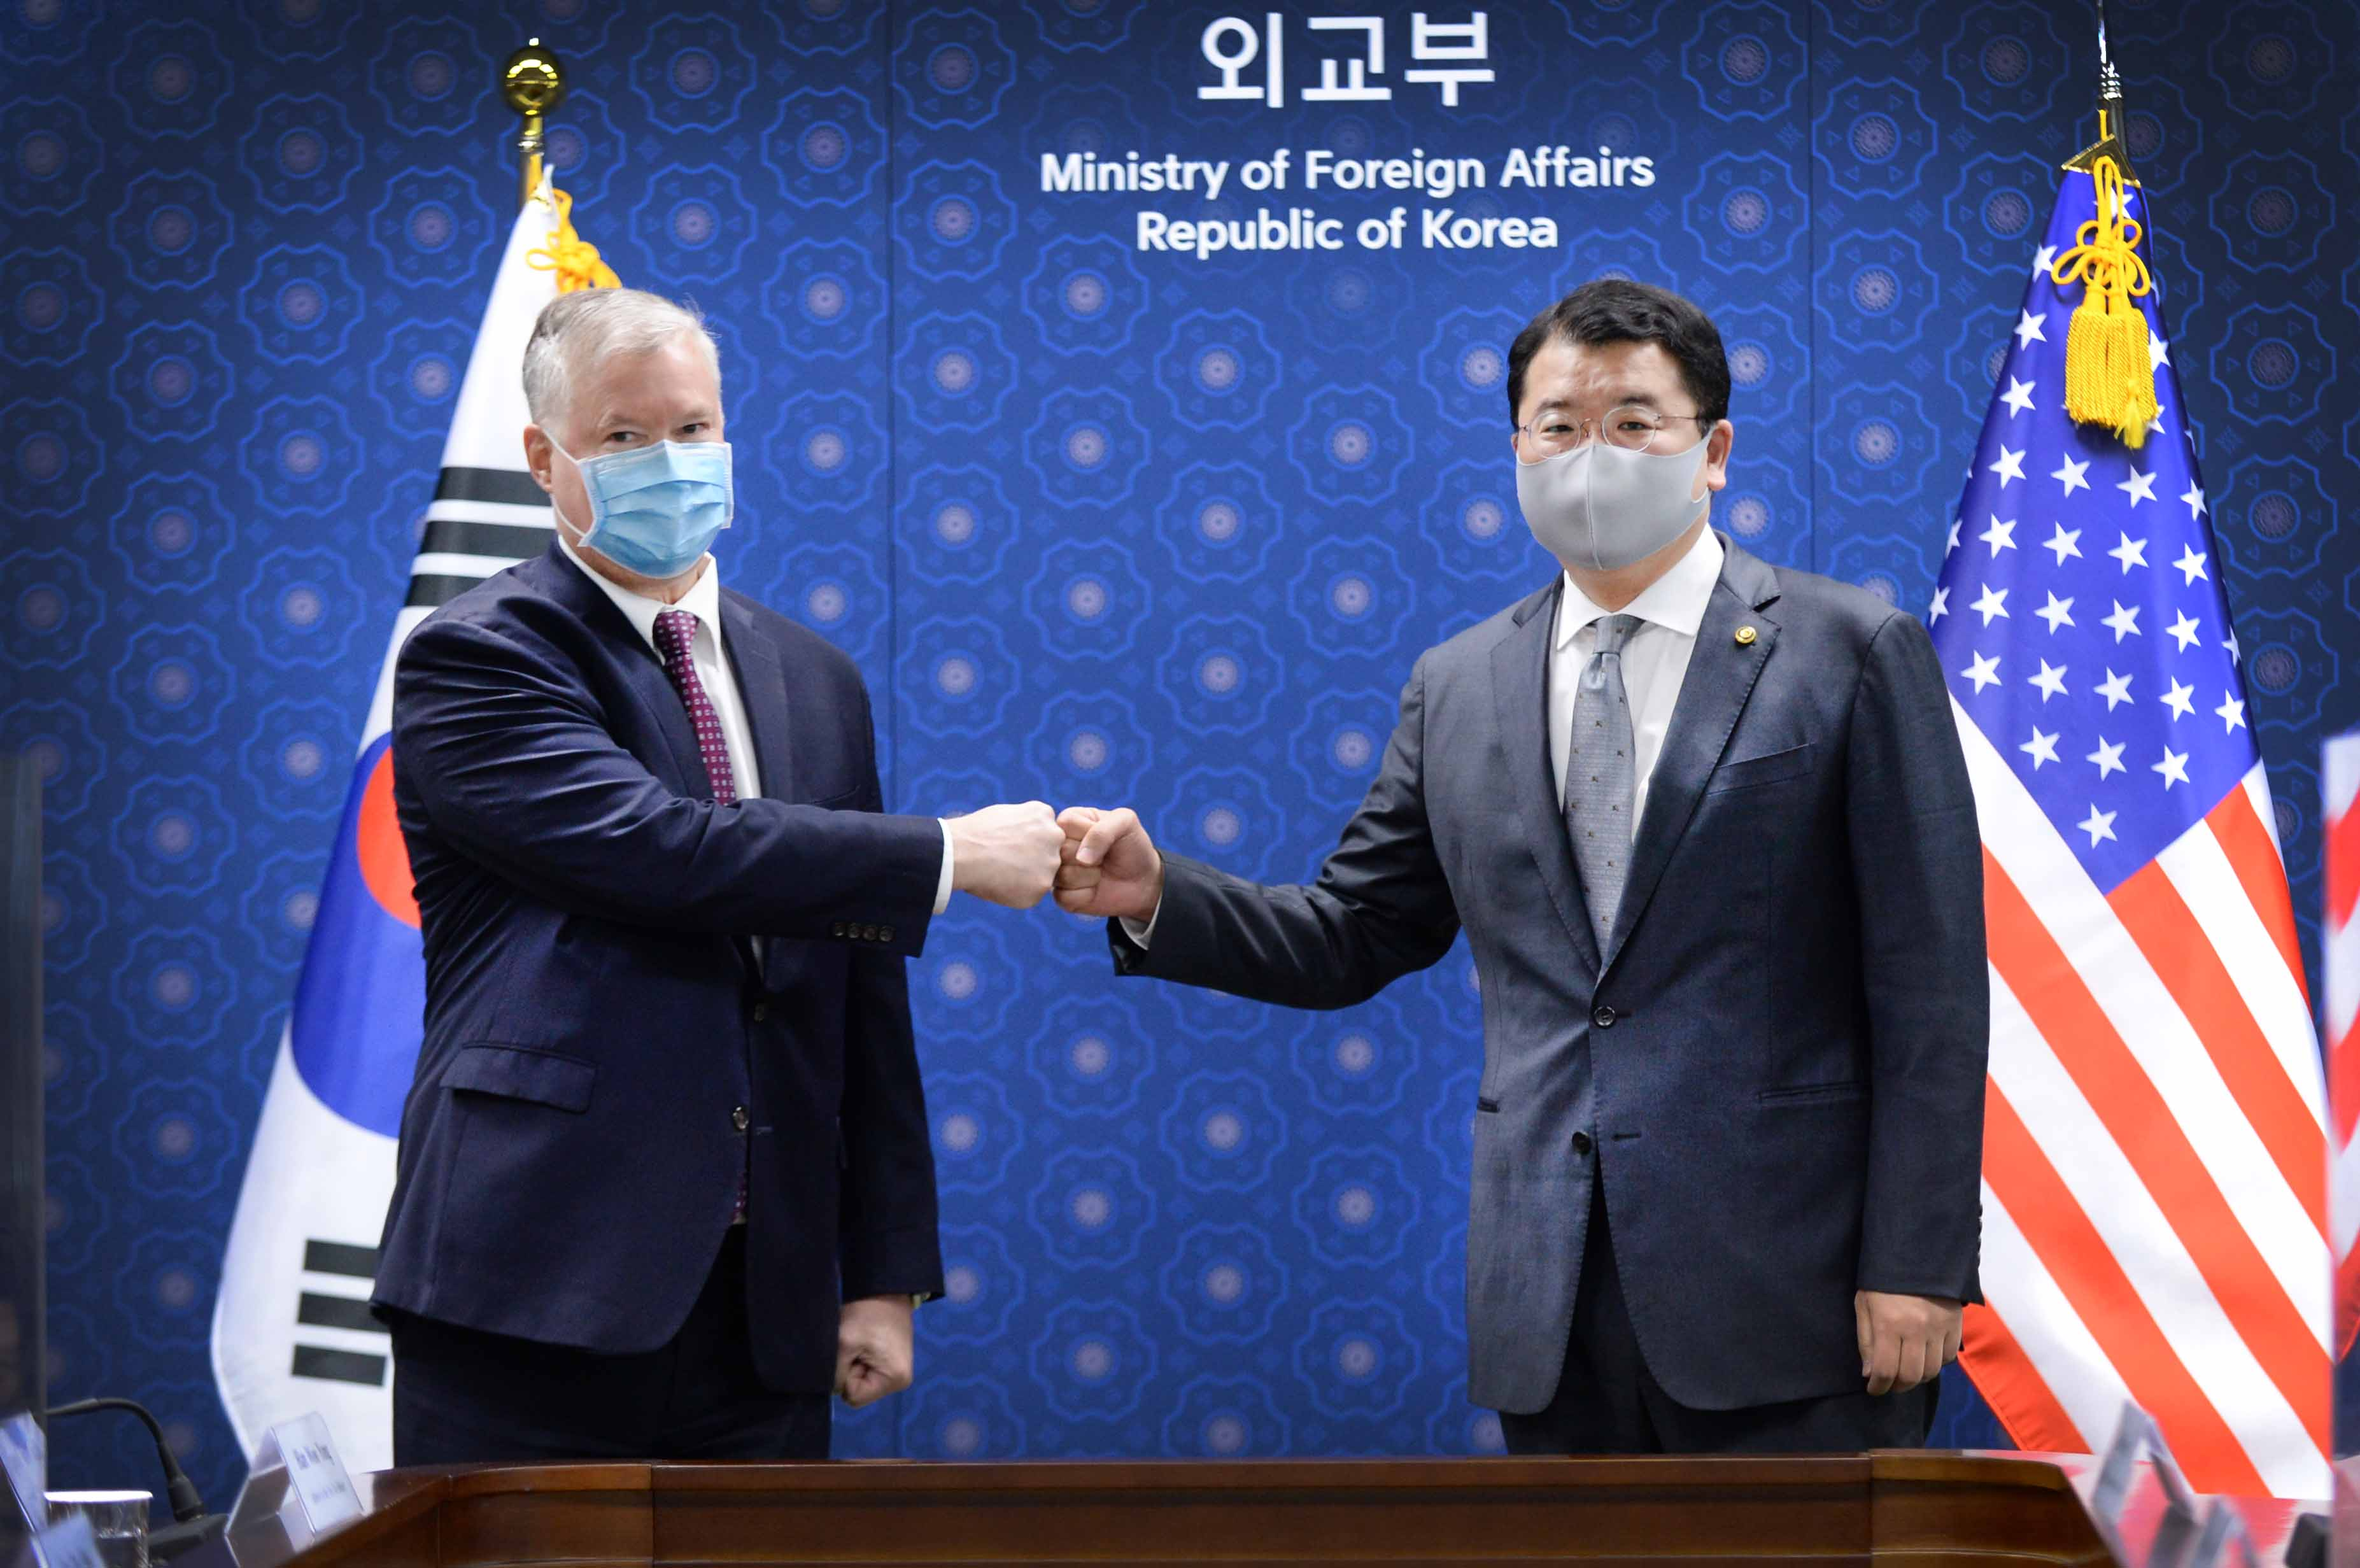 Outcome of Meeting between Vice Minister of Foreign Affairs Choi and U.S. Deputy Secretary of State Biegun